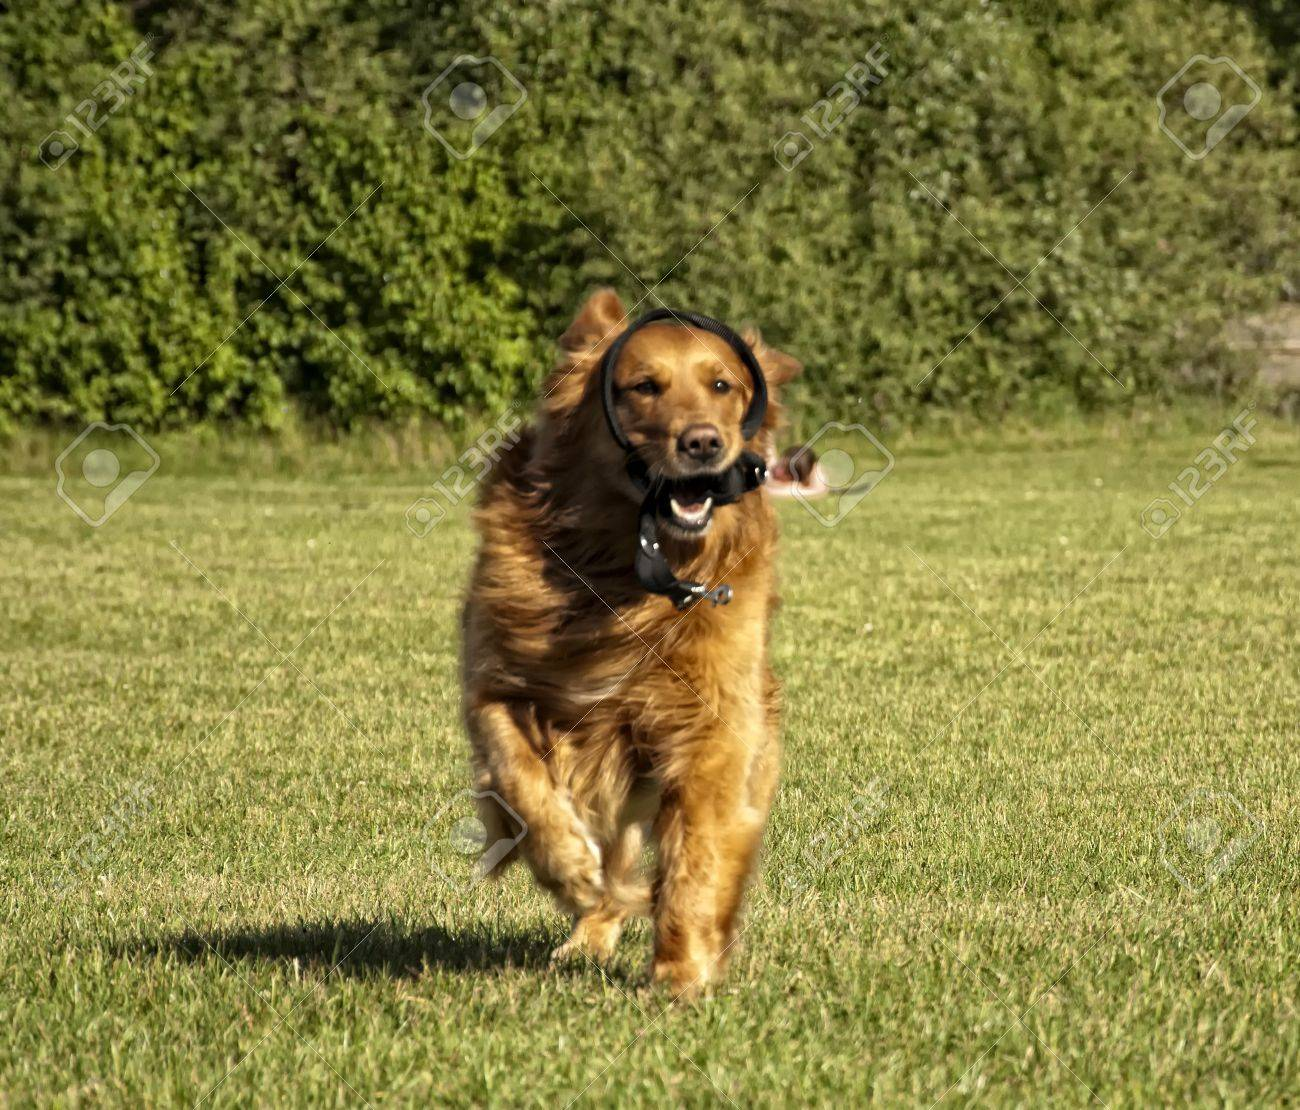 Running Dogs Faces Golden Retriever Dog Face